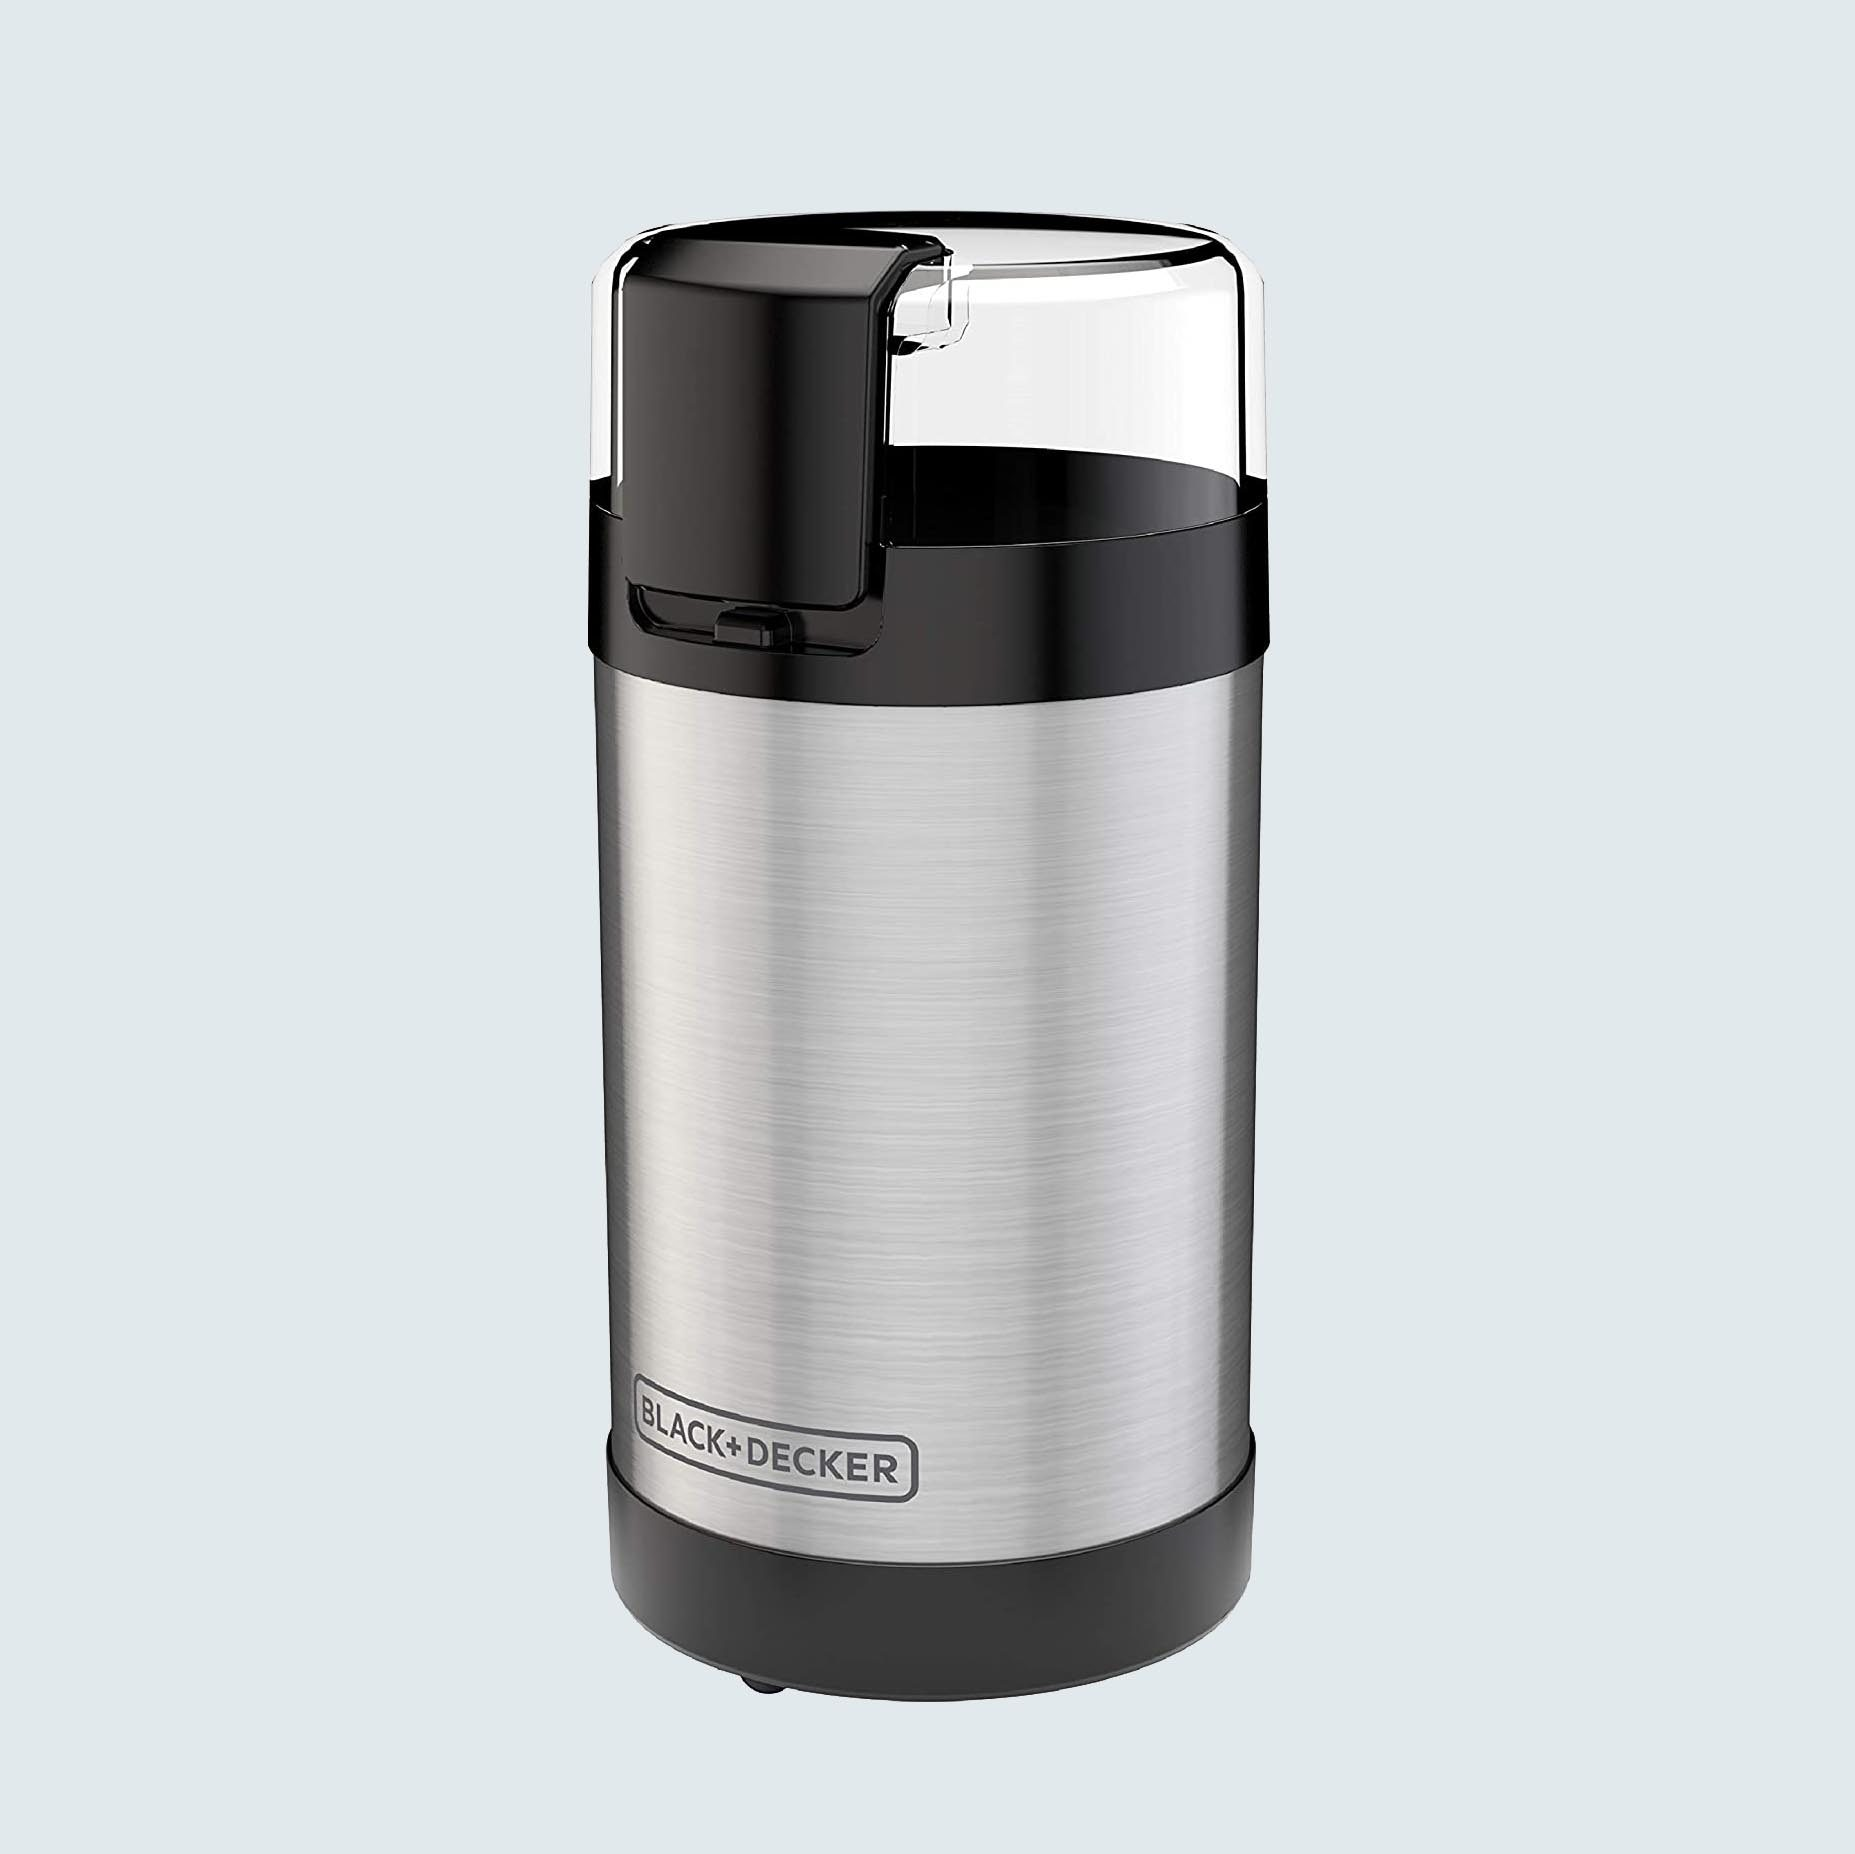 Black + Decker One Touch Push-Button Control Coffee Grinder